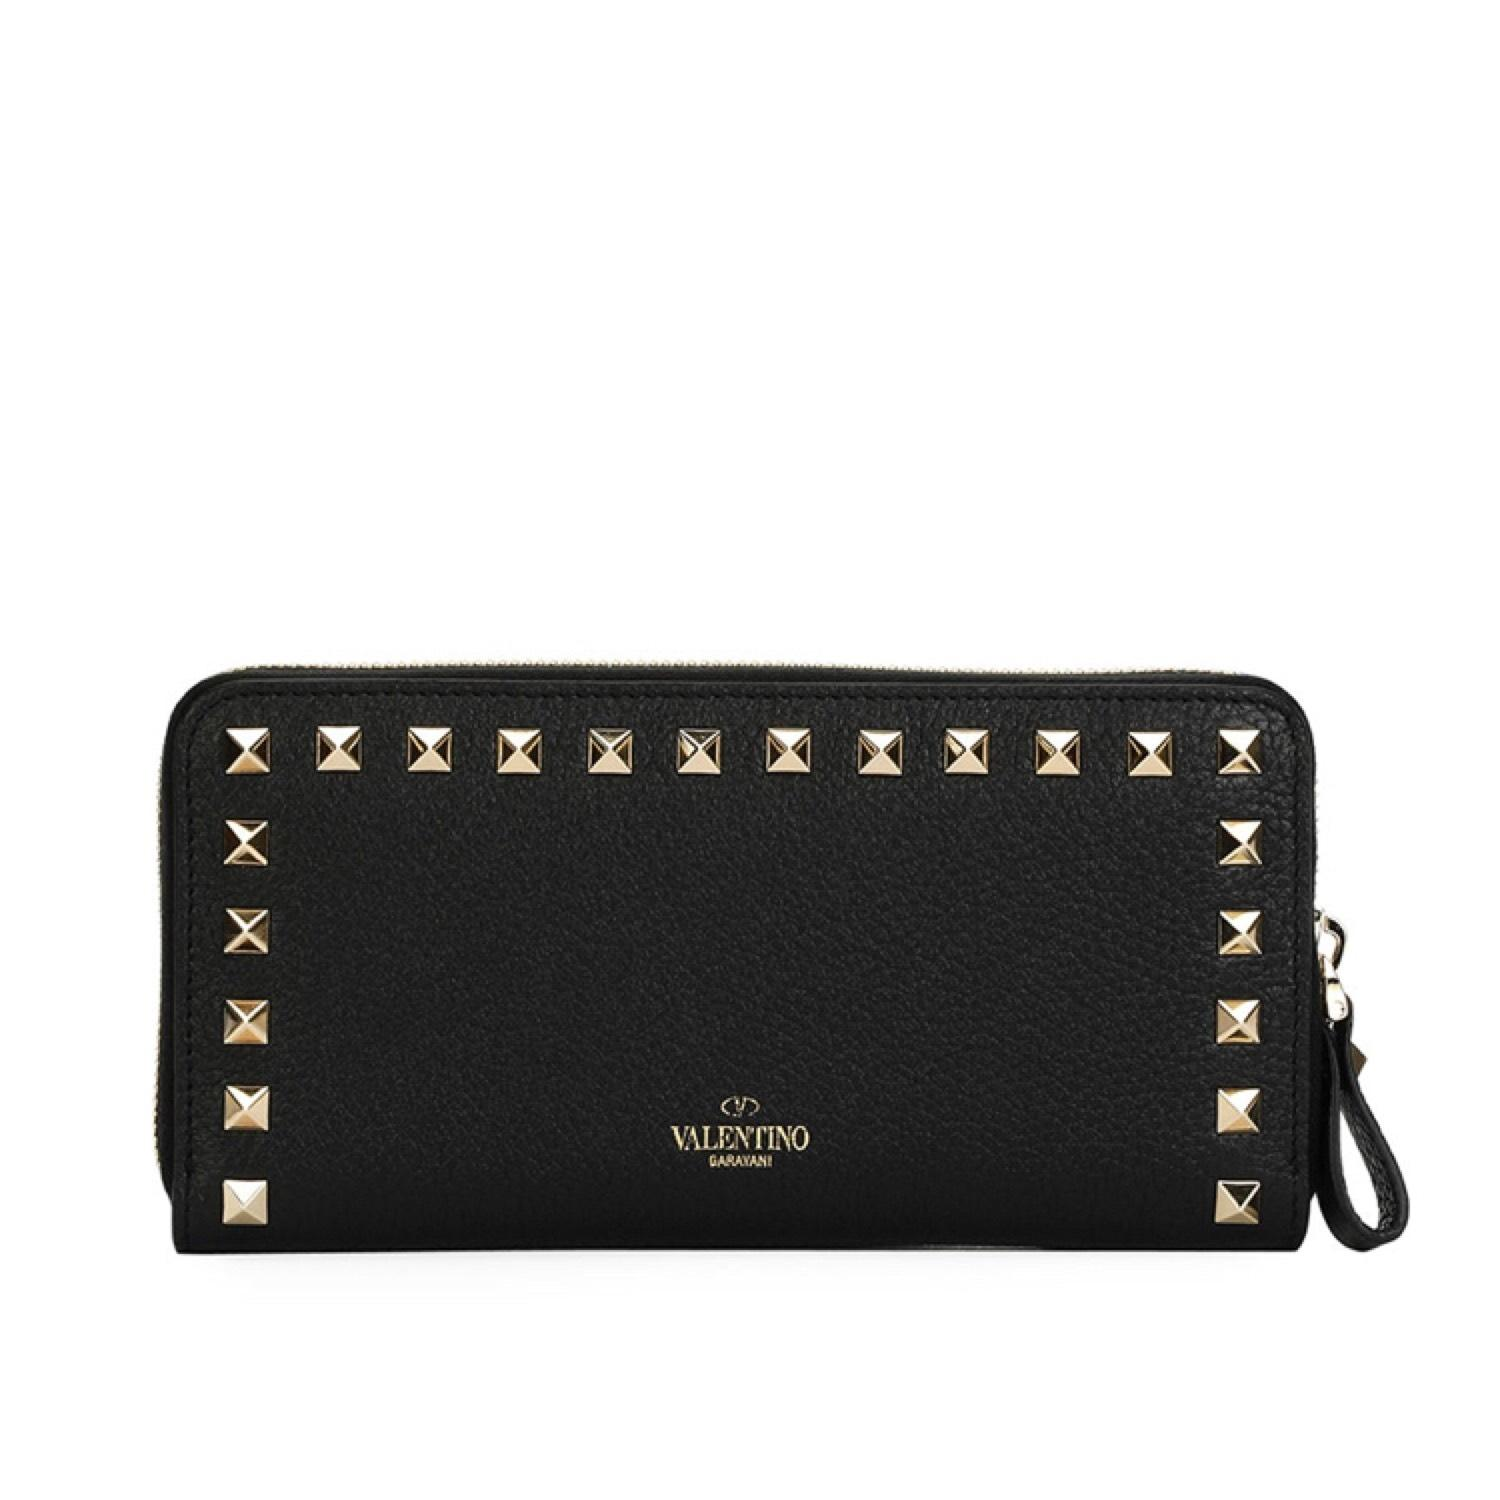 Rockstud zipped around continental wallet Valentino